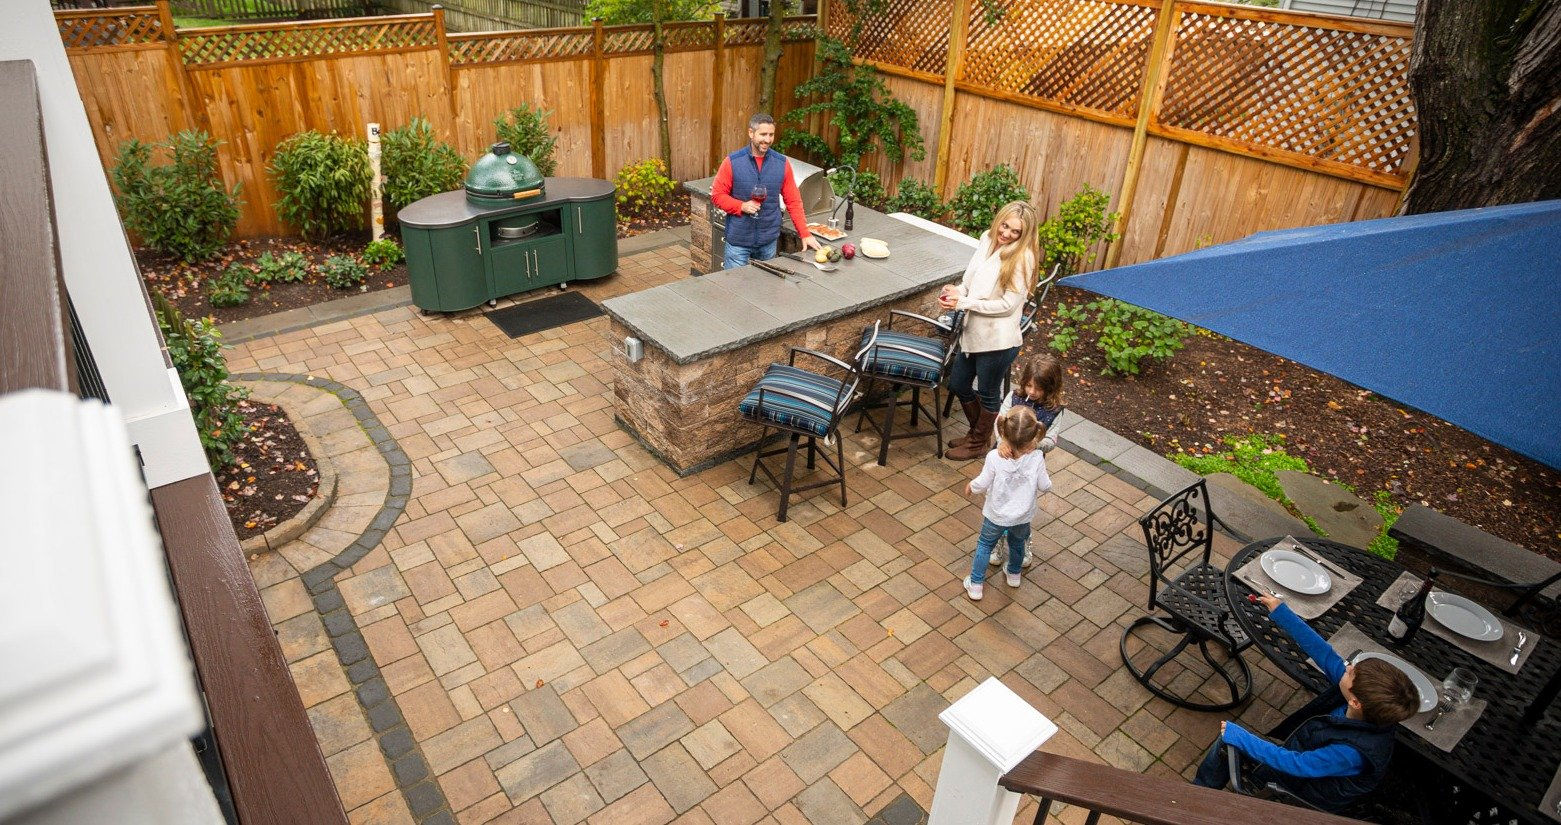 Paver patio with outdoor kitchen and bar area